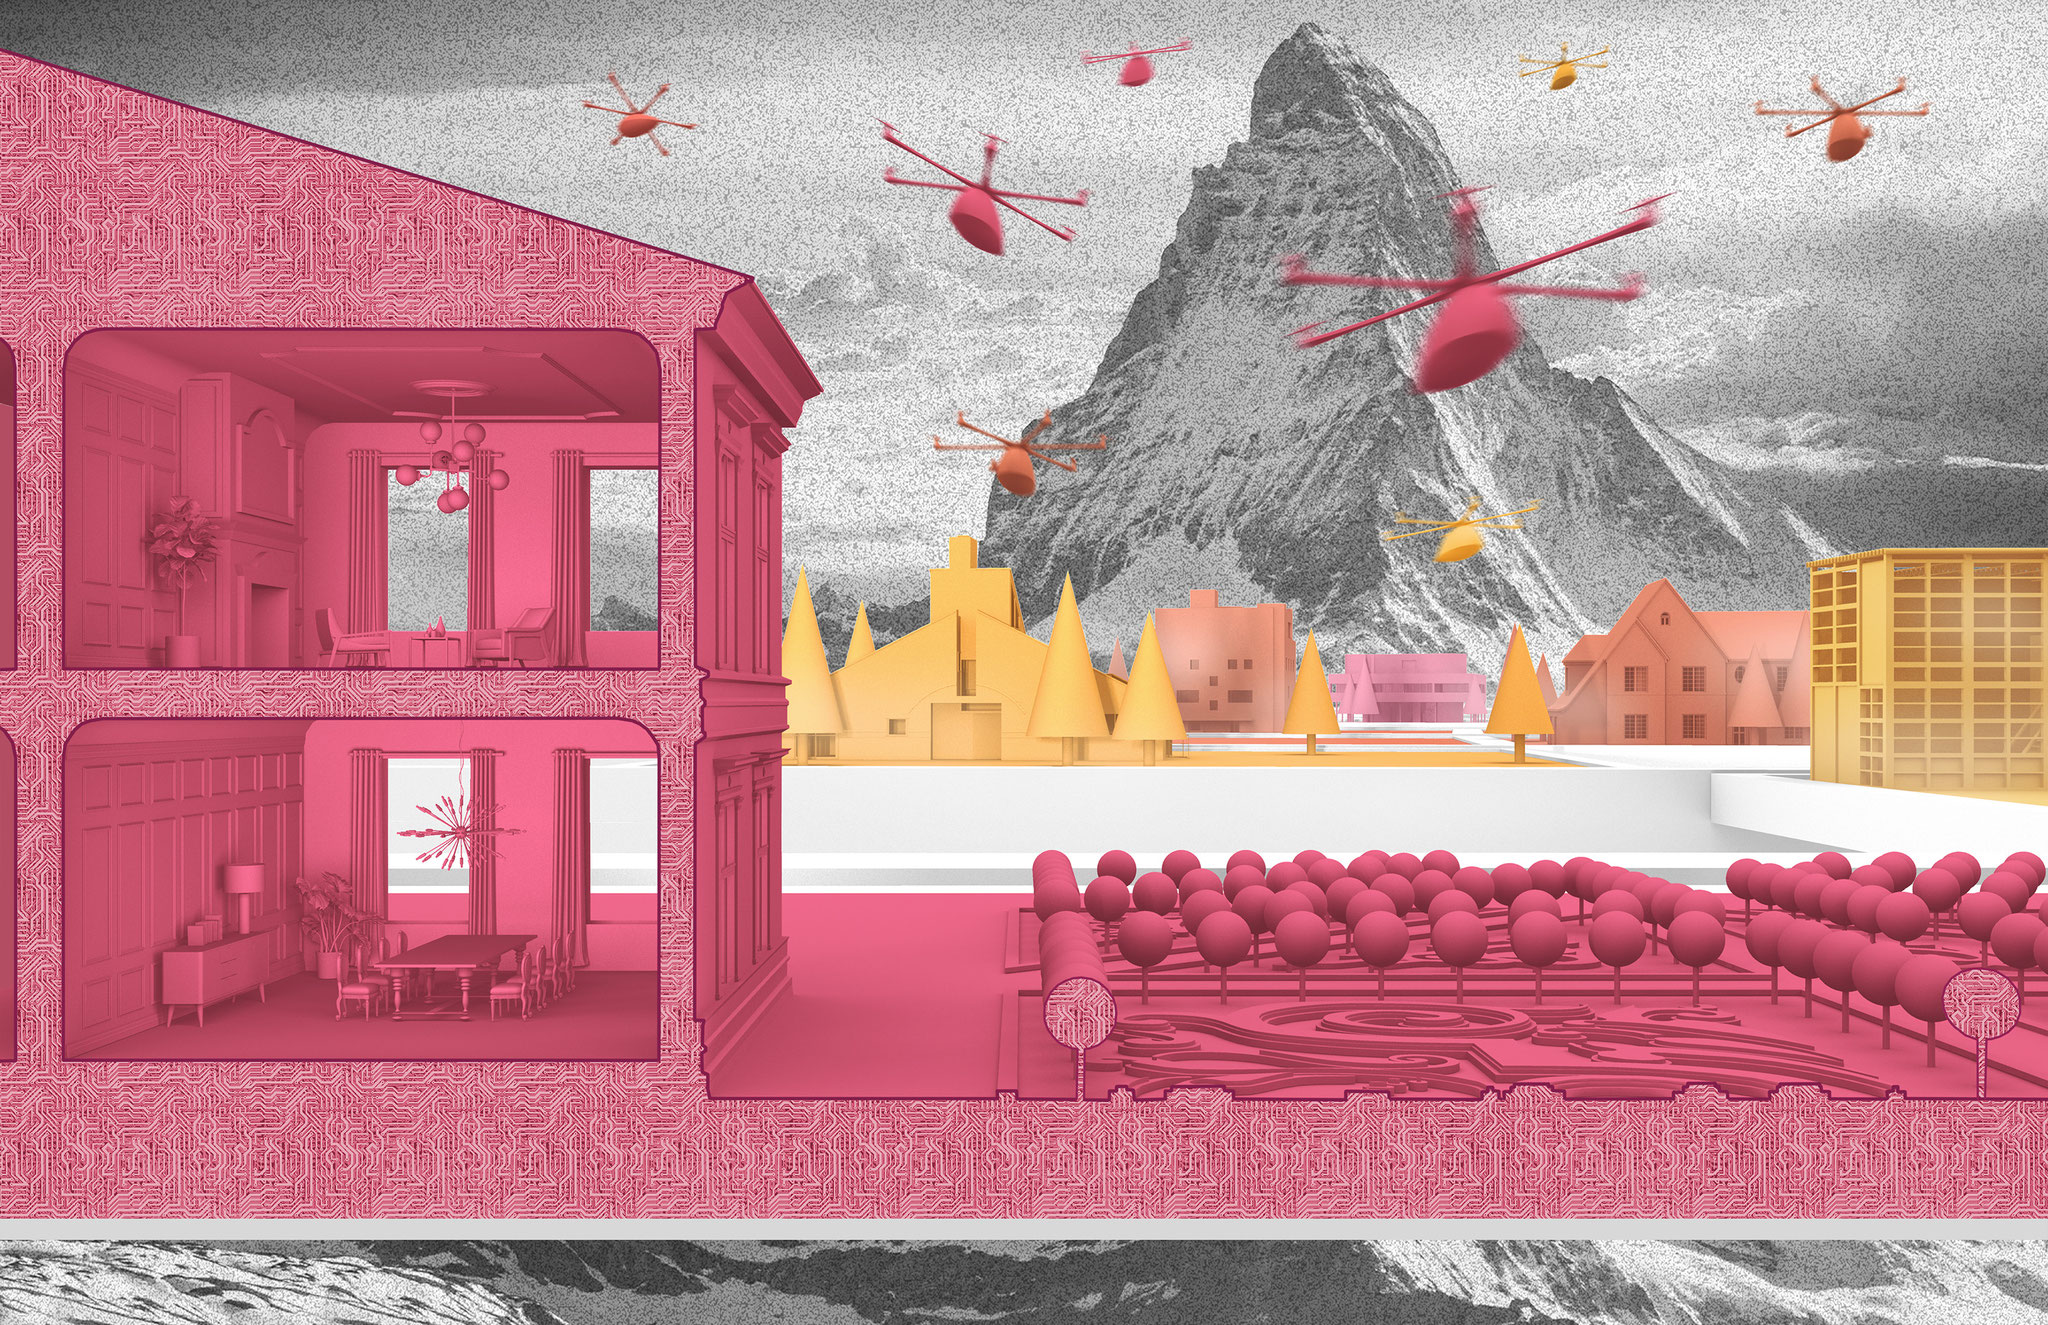 Future architecture and urbanism concept by Paul Eis. Part of the Fairy Tale Competiton. Utopian or dystopian scenario. Colorful renderings and collages.